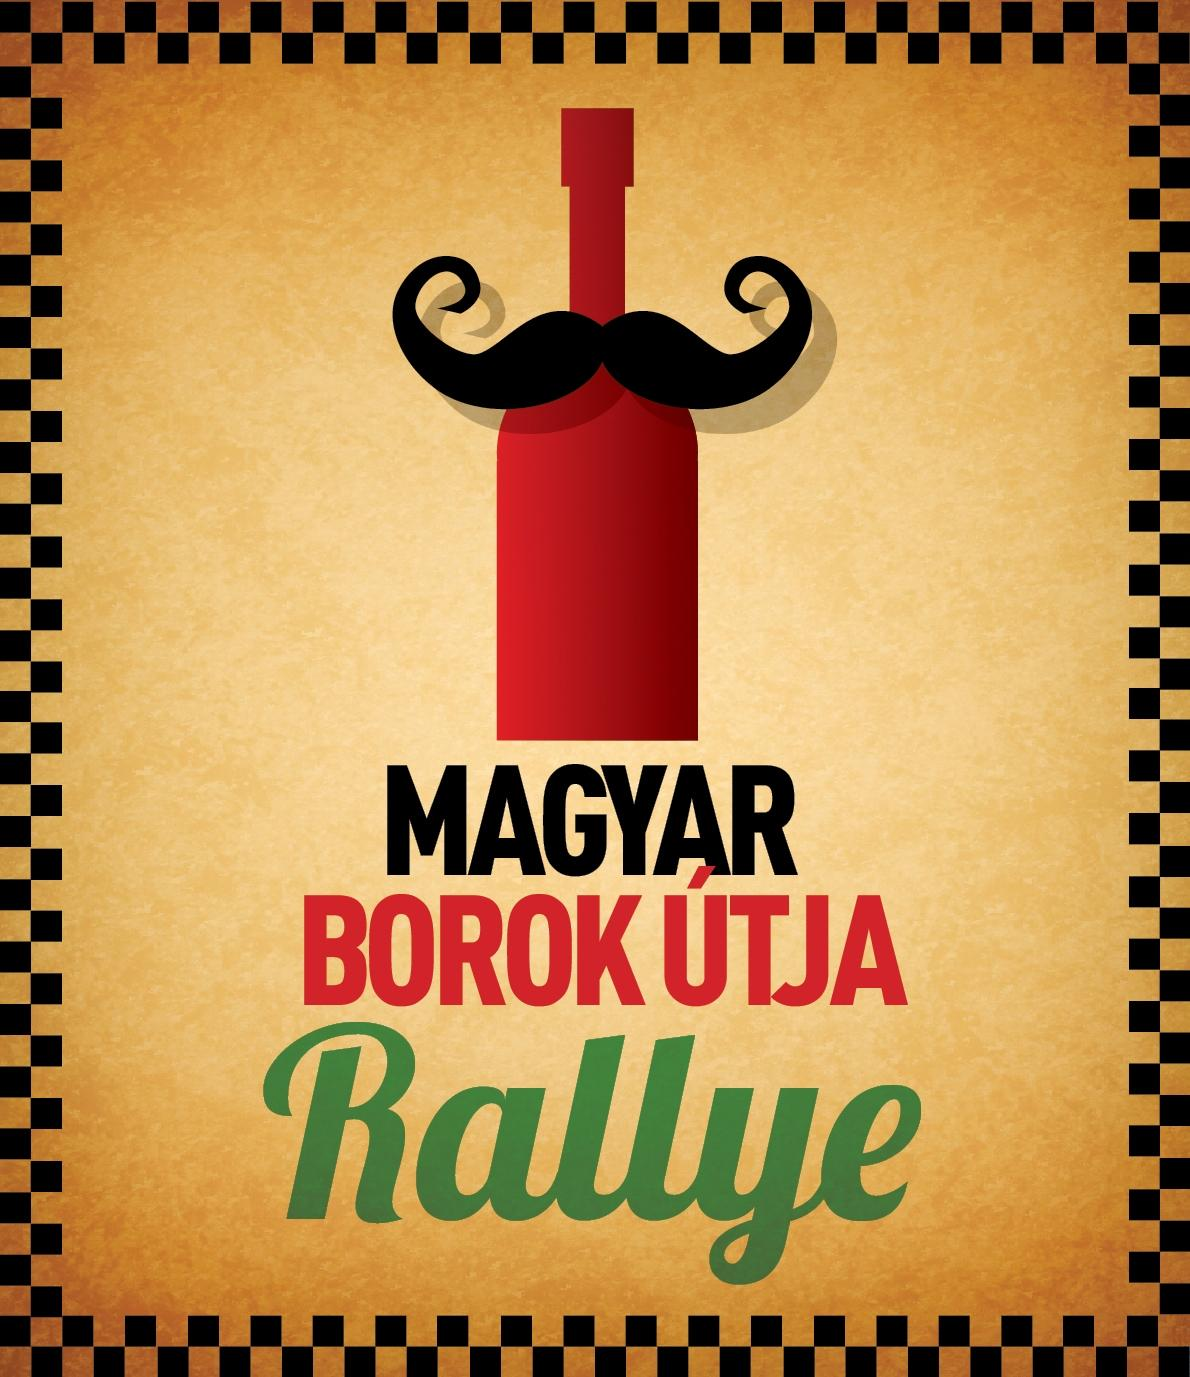 XVII. Road Of Hungarian Wines Rally, 24 August